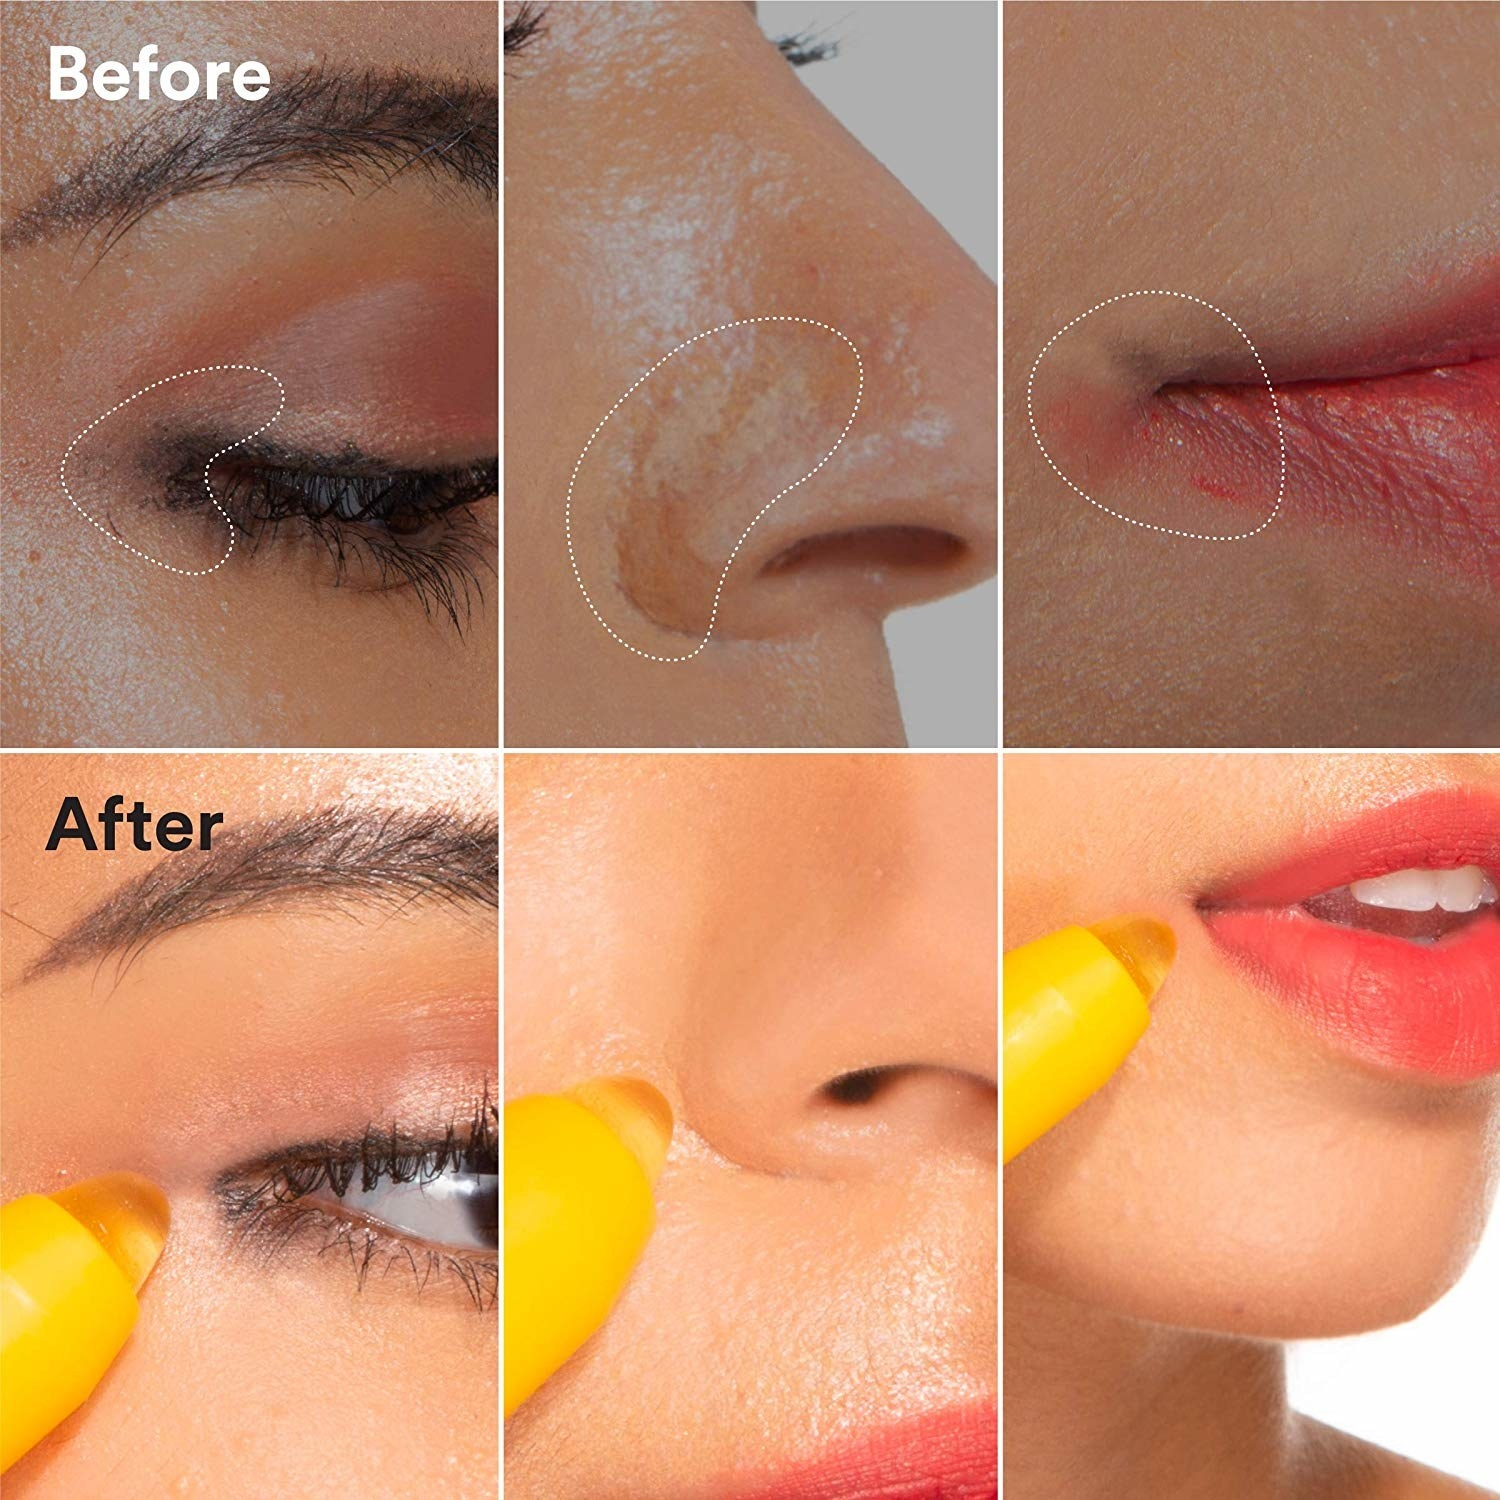 "Above: The text ""Before"" and makeup smudges on a model's eye, nose, and mouth. Below, the text ""After"" and the yellow, pen-shaped tool swiping away all the smudges"